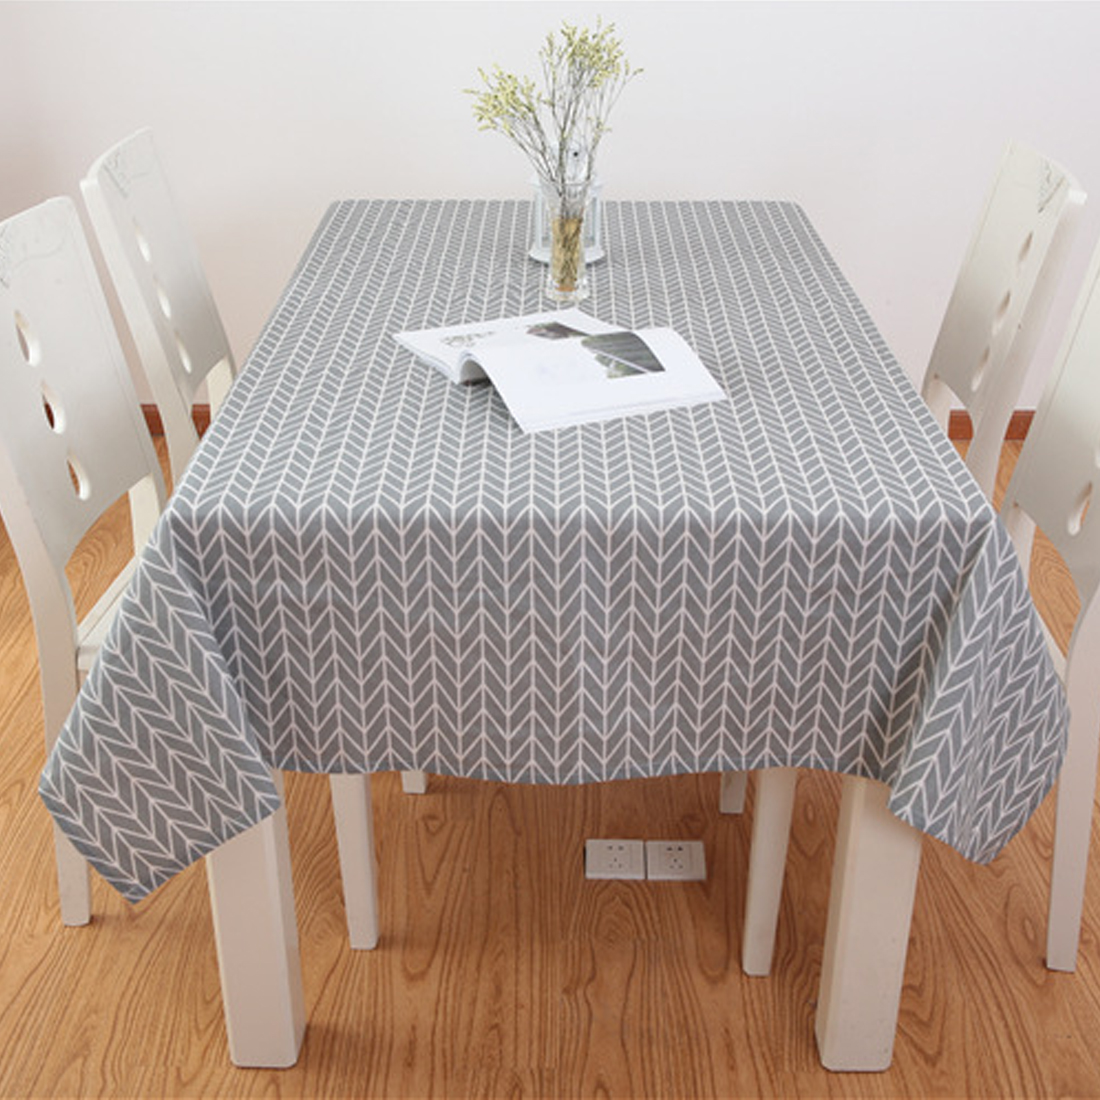 6 Sizes Table Cloth Country Style Plaid Print Rectangle Square Table <font><b>Cover</b></font> Tablecloth <font><b>Home</b></font> <font><b>Textile</b></font> <font><b>Home</b></font> Kitchen Decoration image